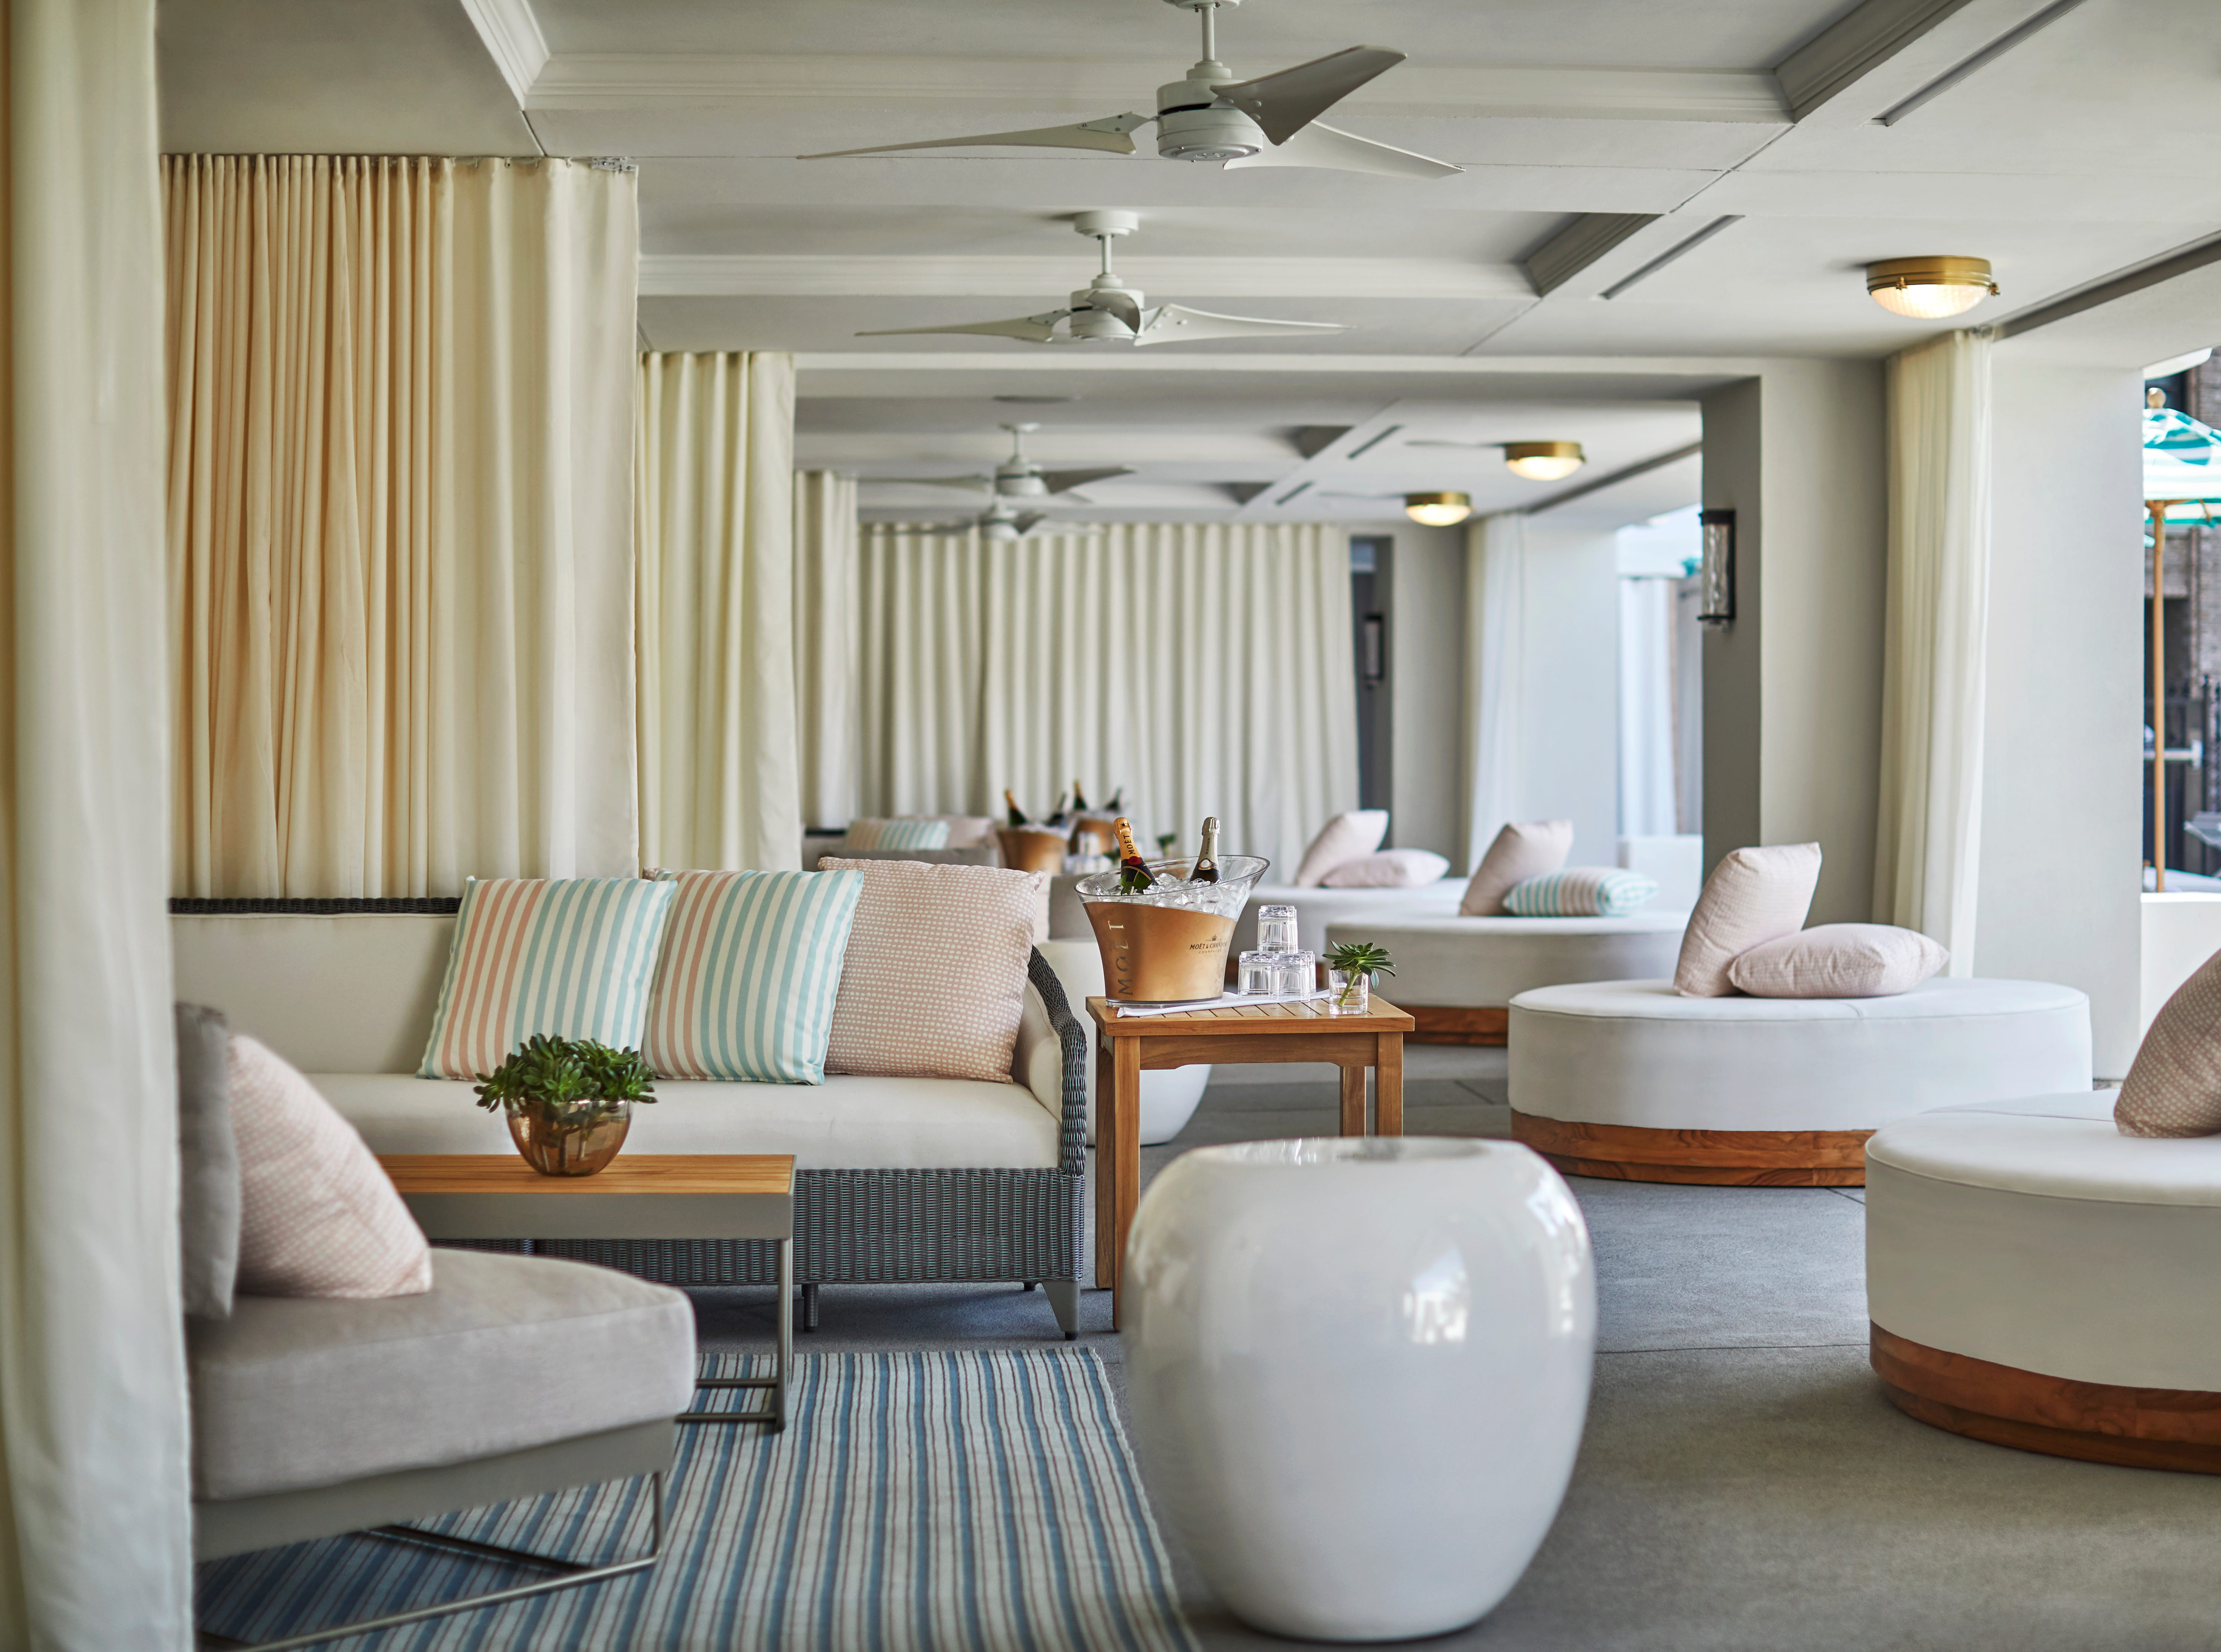 The rooftop Pool House at Pendry San Diego in downtown San Diego offers plush poolside cabanas for $800. The cabanas, which fit 8 to 10 people, includes food and drinks, a dedictated server, TV and a cooler for drinks.